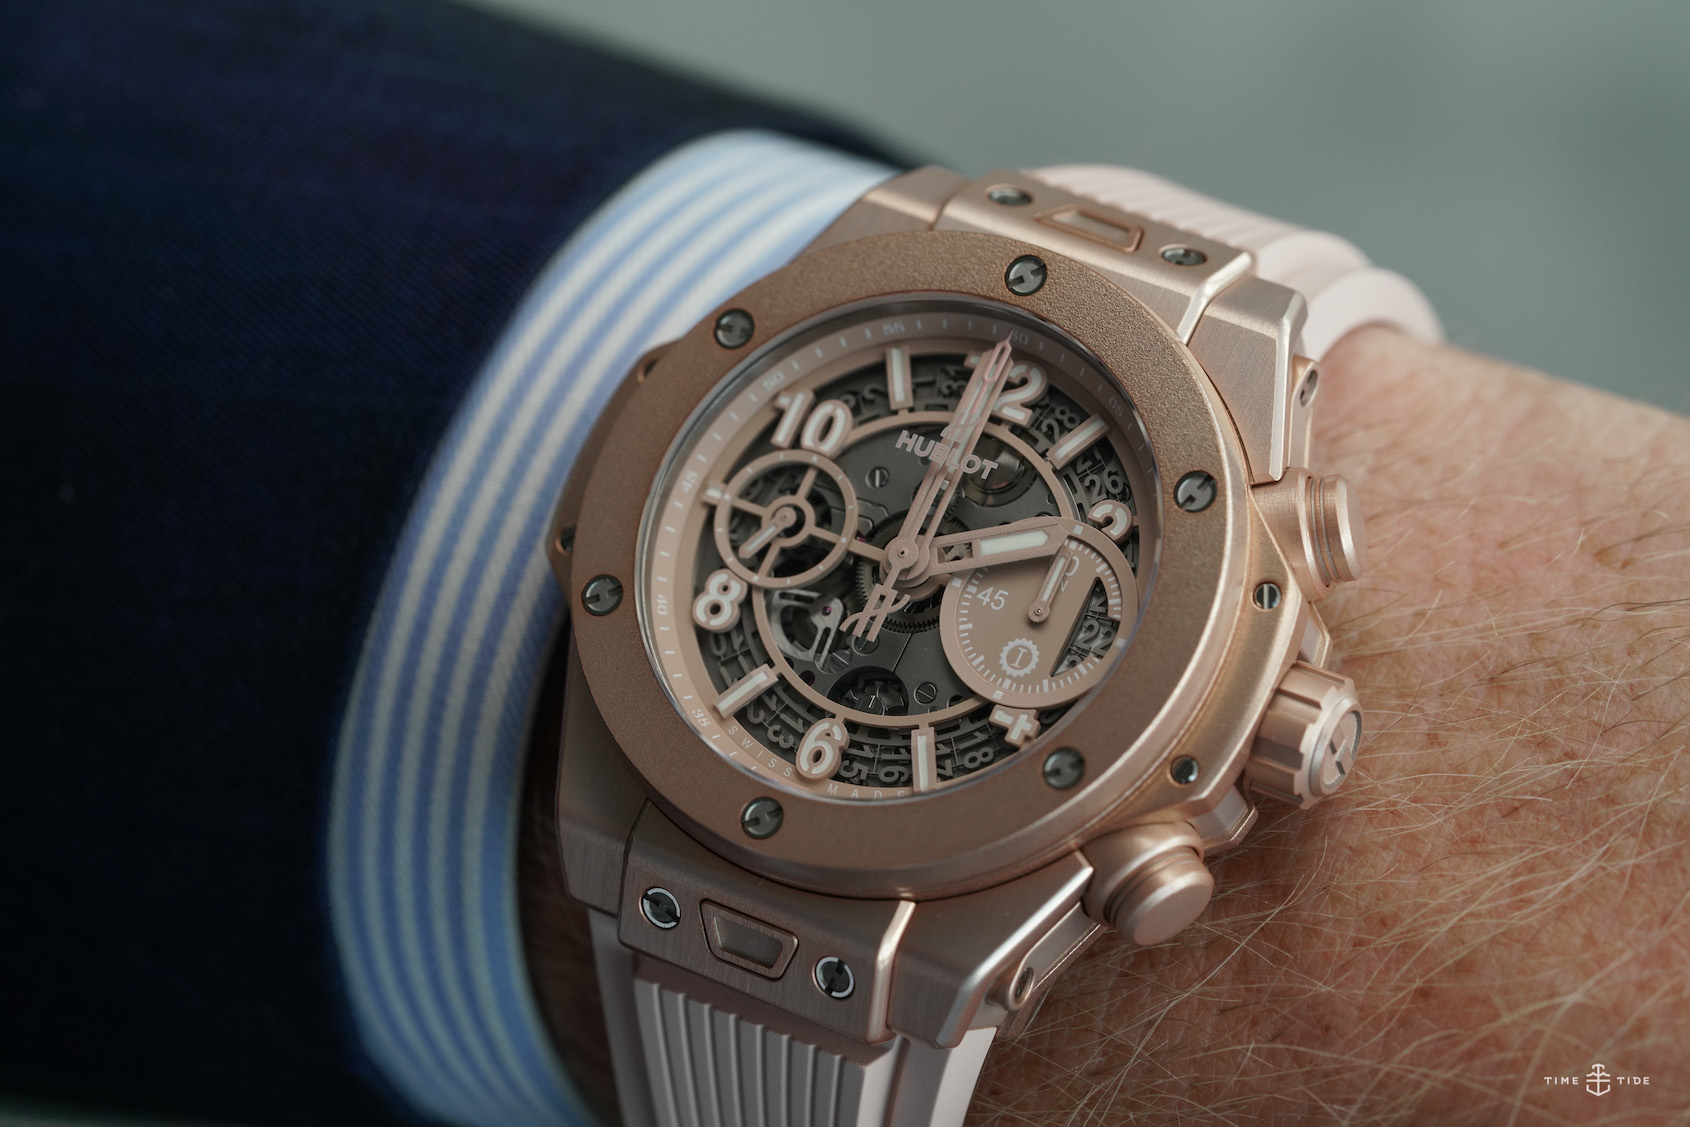 The Hublot Big Bang Millennial Pink in this video sure is pretty, but is it pink, per se?